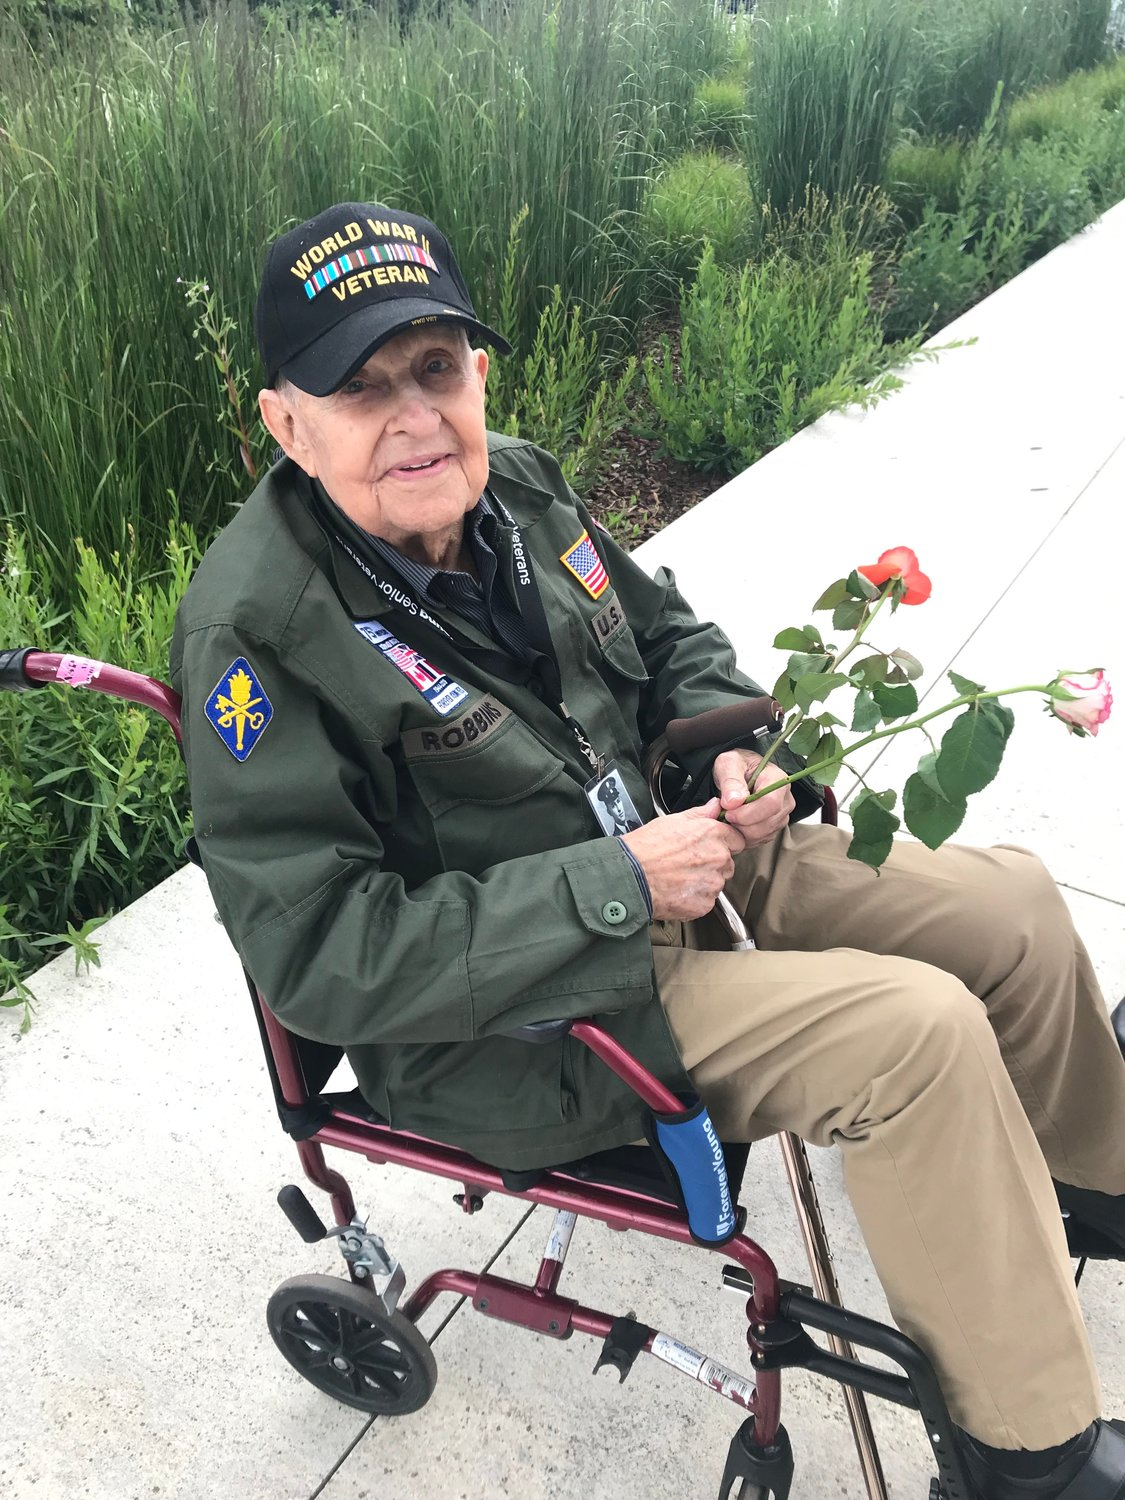 K.T. Robbins, a World War II veteran from Mississippi, returned to Normandy on June 5 for the 75th anniversary of D-Day. Robbins was one of the U.S. soldiers who stormed the shores in France in 1944.